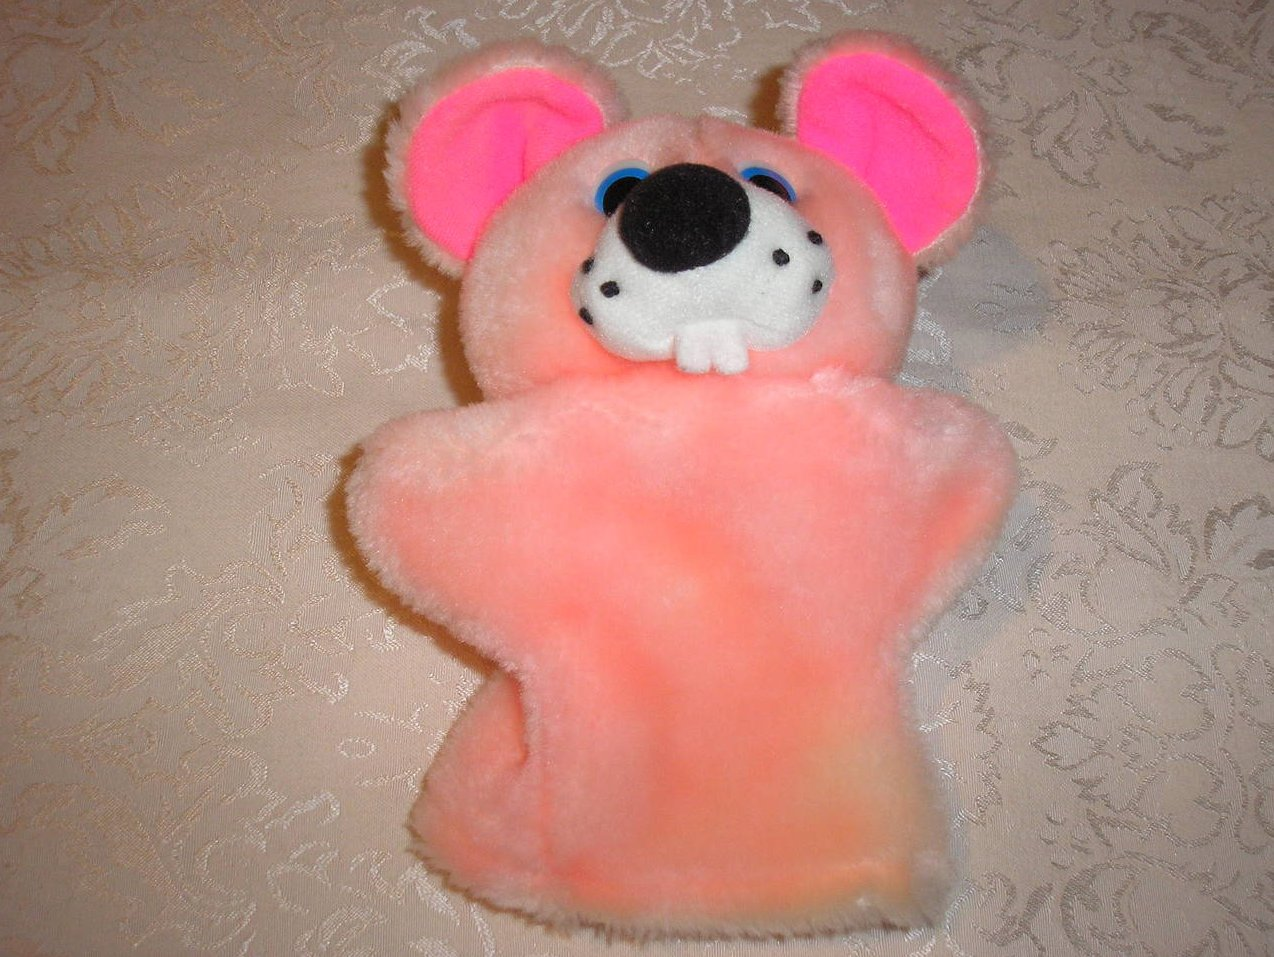 Plush Pink Animal Hand Puppet 9 inches gently used